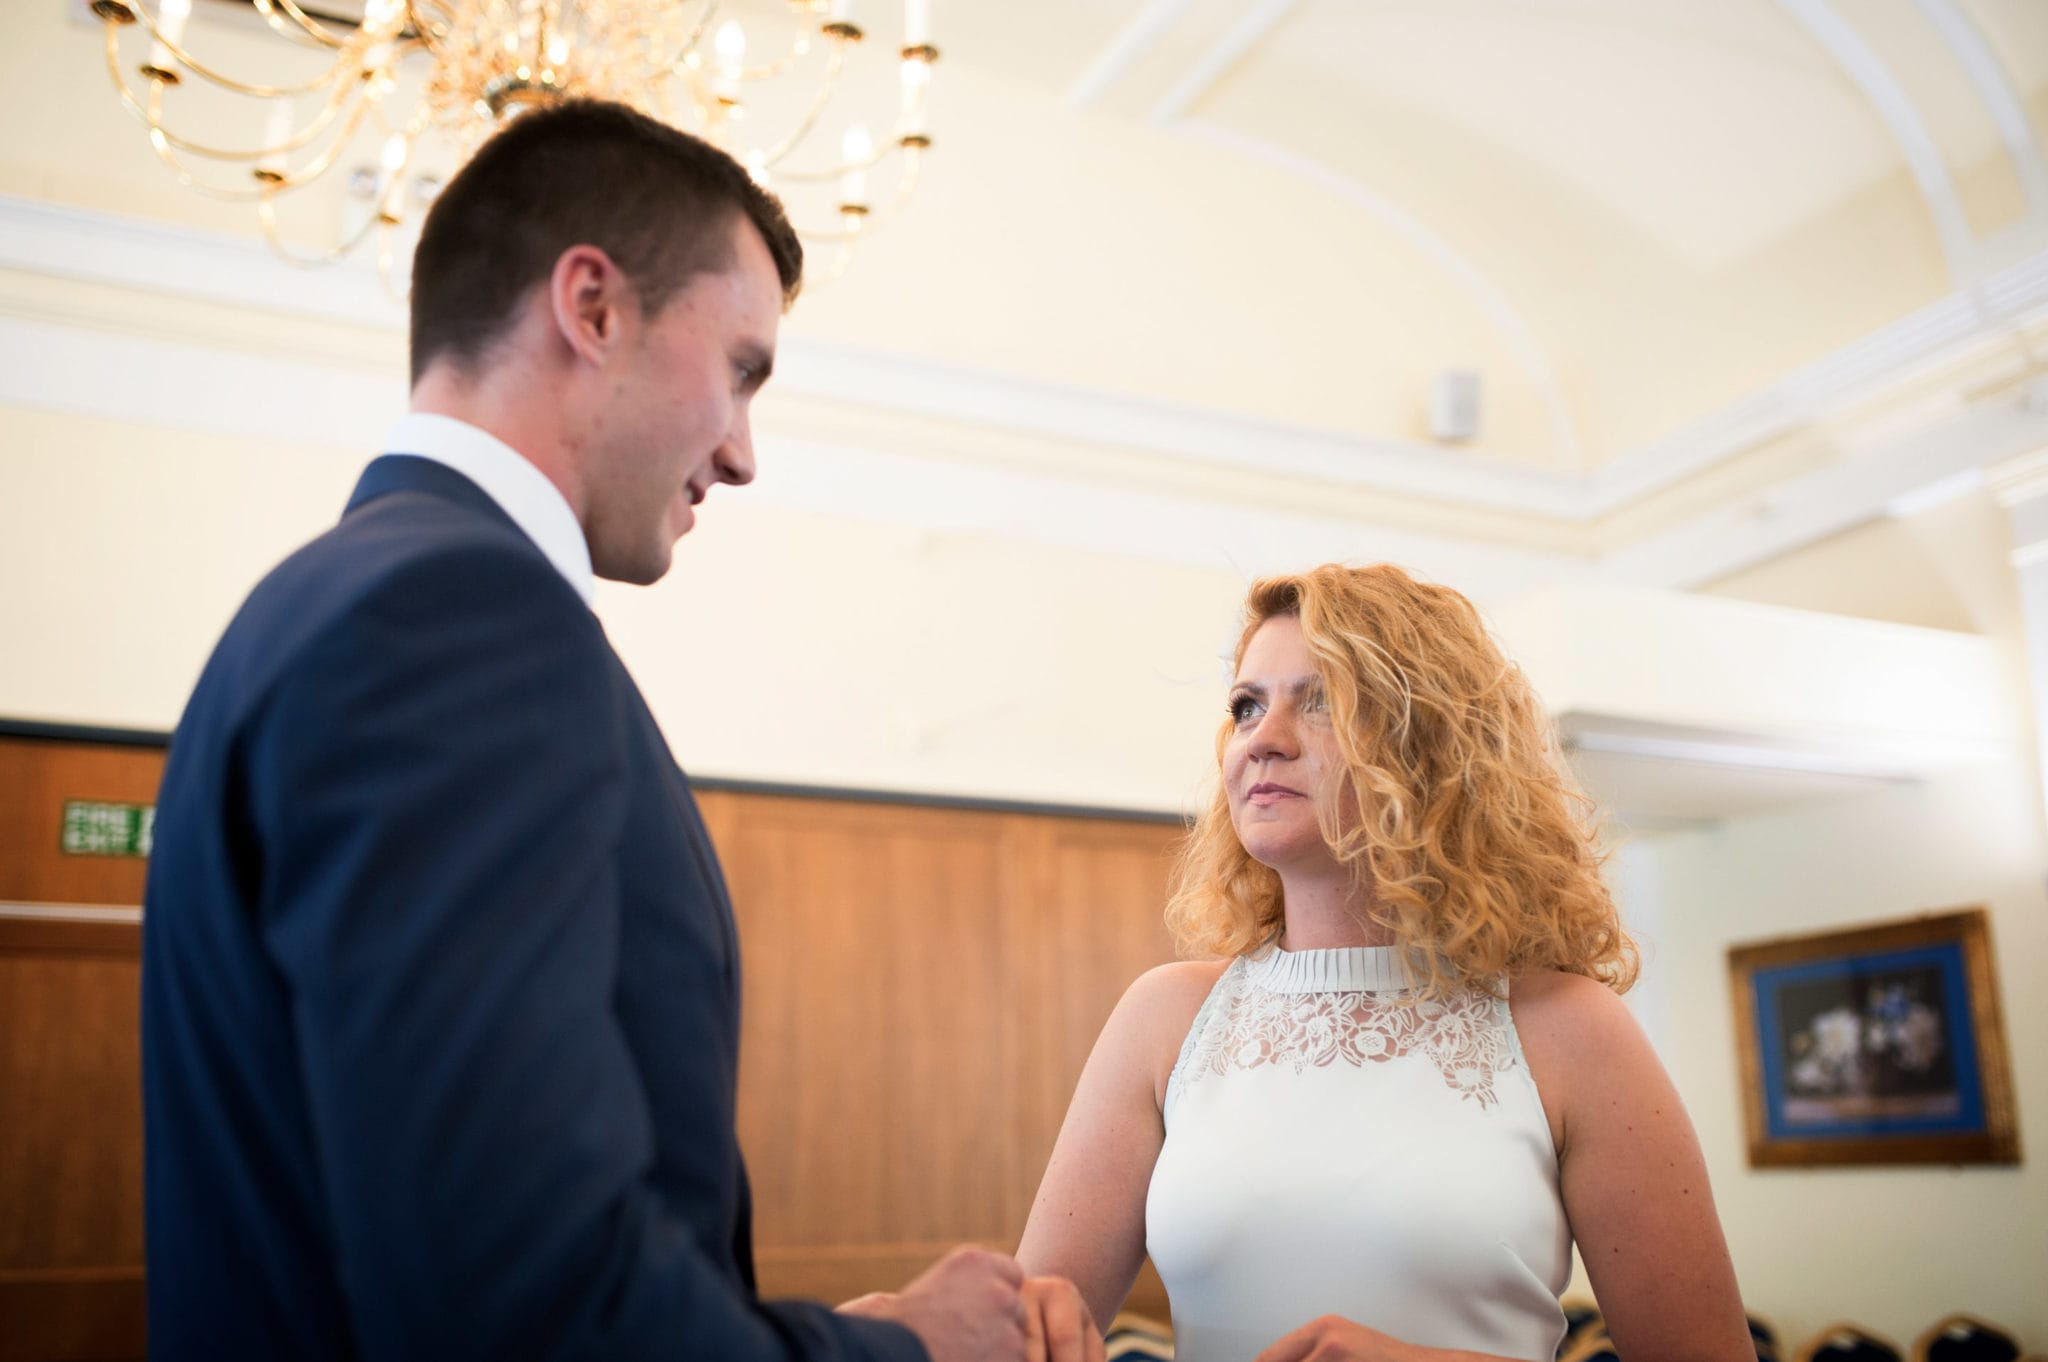 bride and groom Bromley on Bow Registry office, London UK Wedding photography ceremony room with the guest , ring exchange